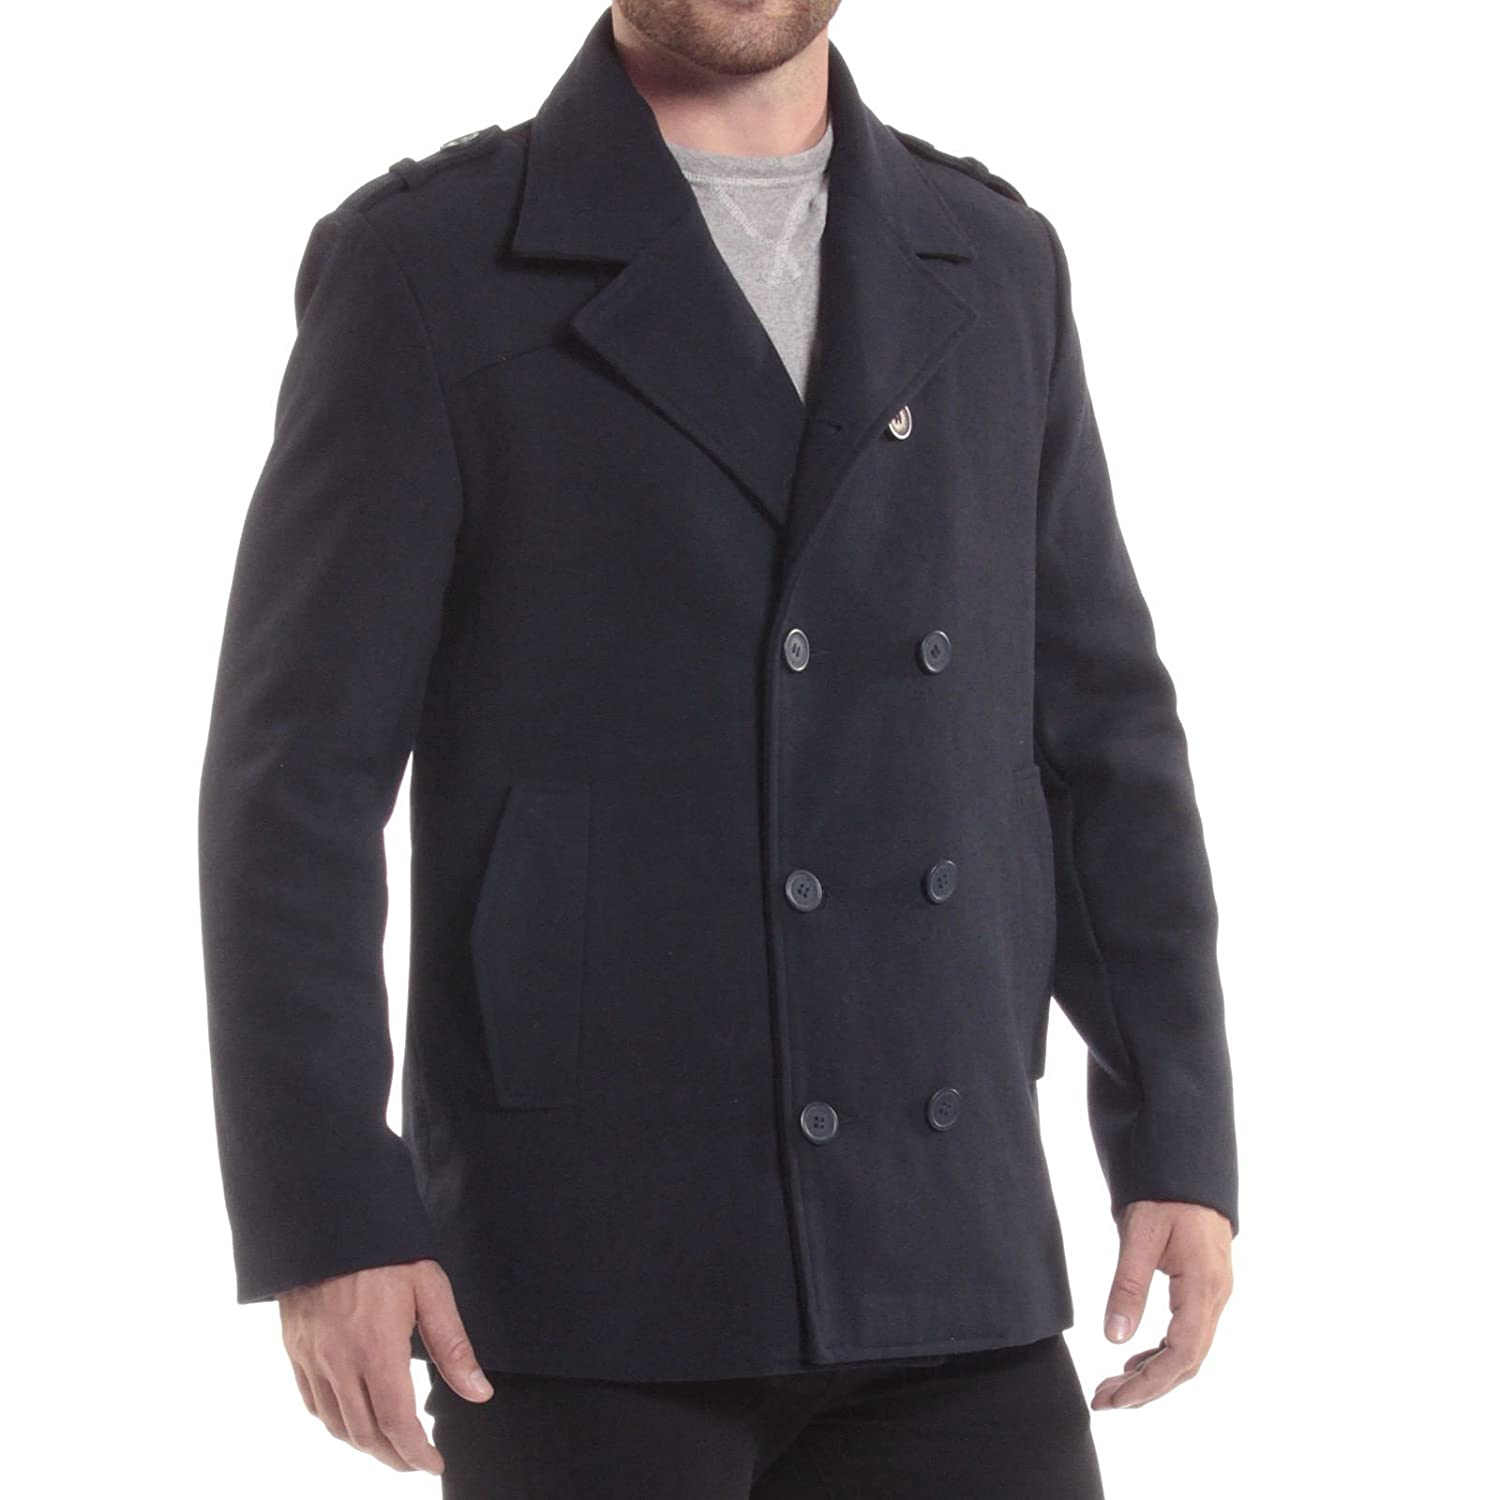 60s 70s Men's Jackets & Sweaters alpine swiss Jake Mens Wool Pea Coat Double Breasted Jacket $39.99 AT vintagedancer.com